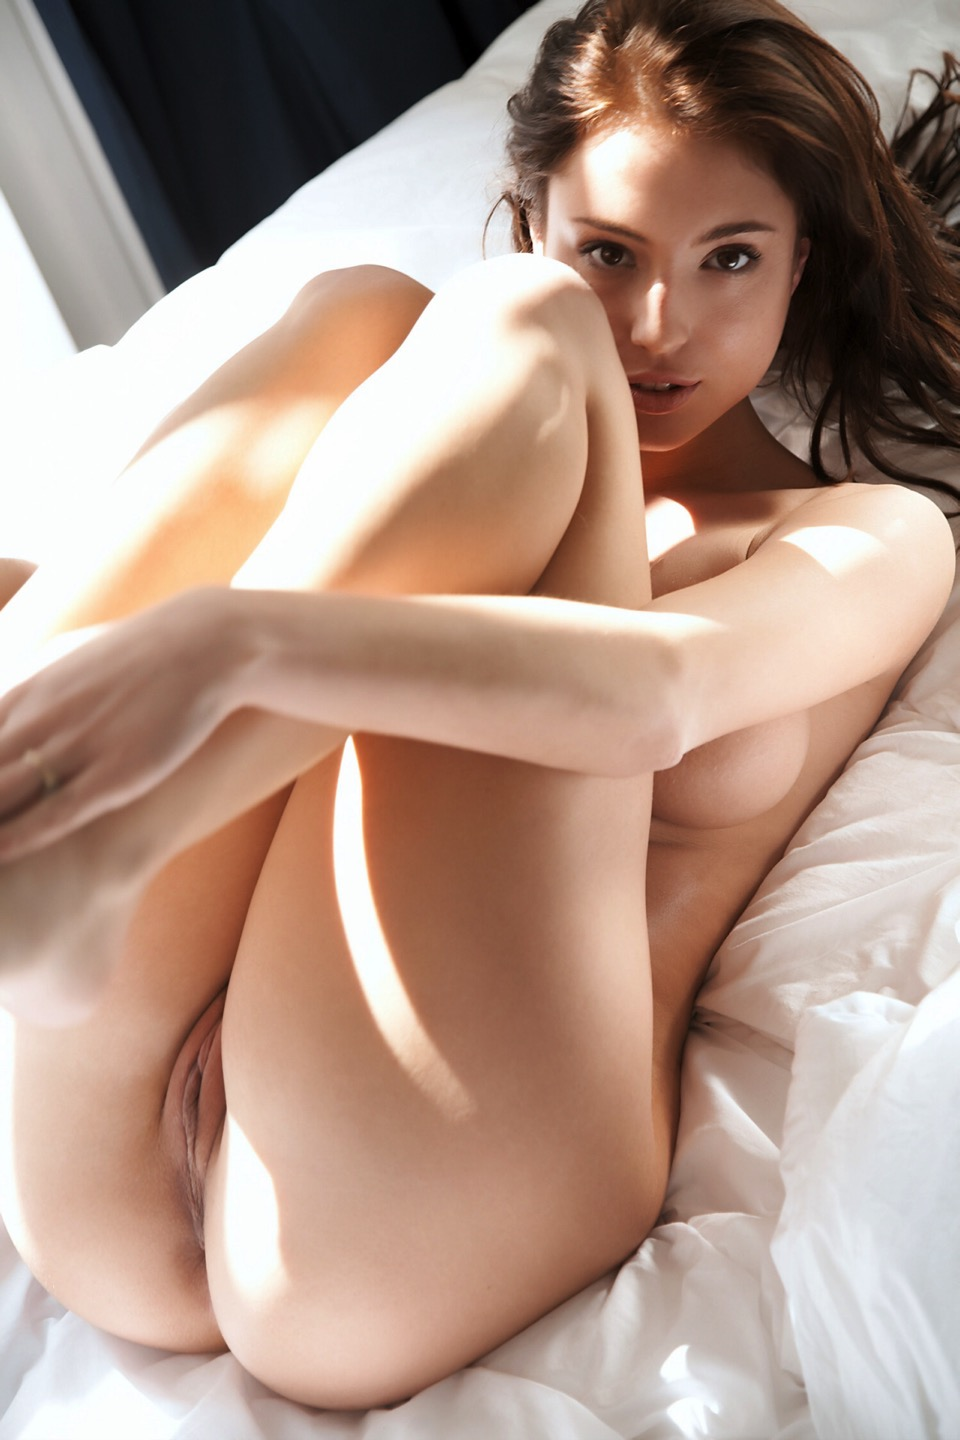 Naked hot young sexy girl pictures